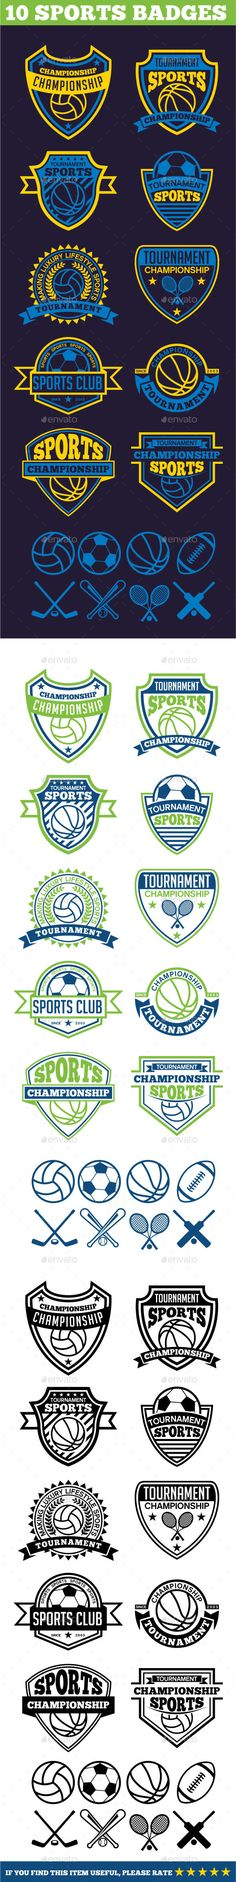 10 Sports Badges #design Download: http://graphicriver.net/item/10-sports-badges/11996659?ref=ksioks